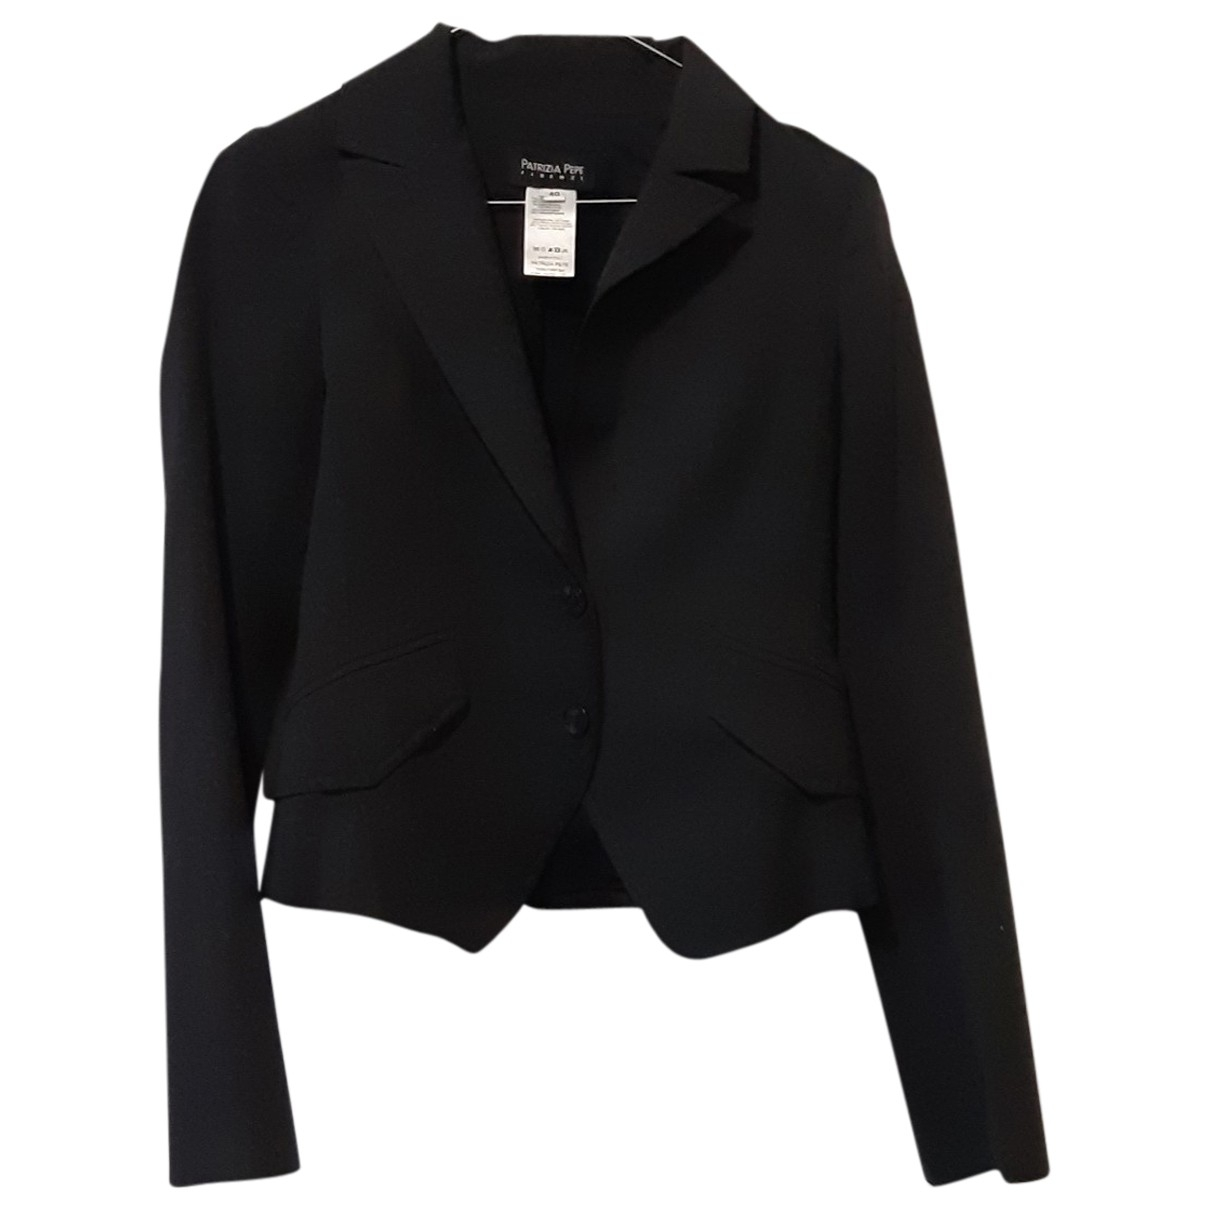 Patrizia Pepe \N Anthracite Wool jacket for Women 40 IT